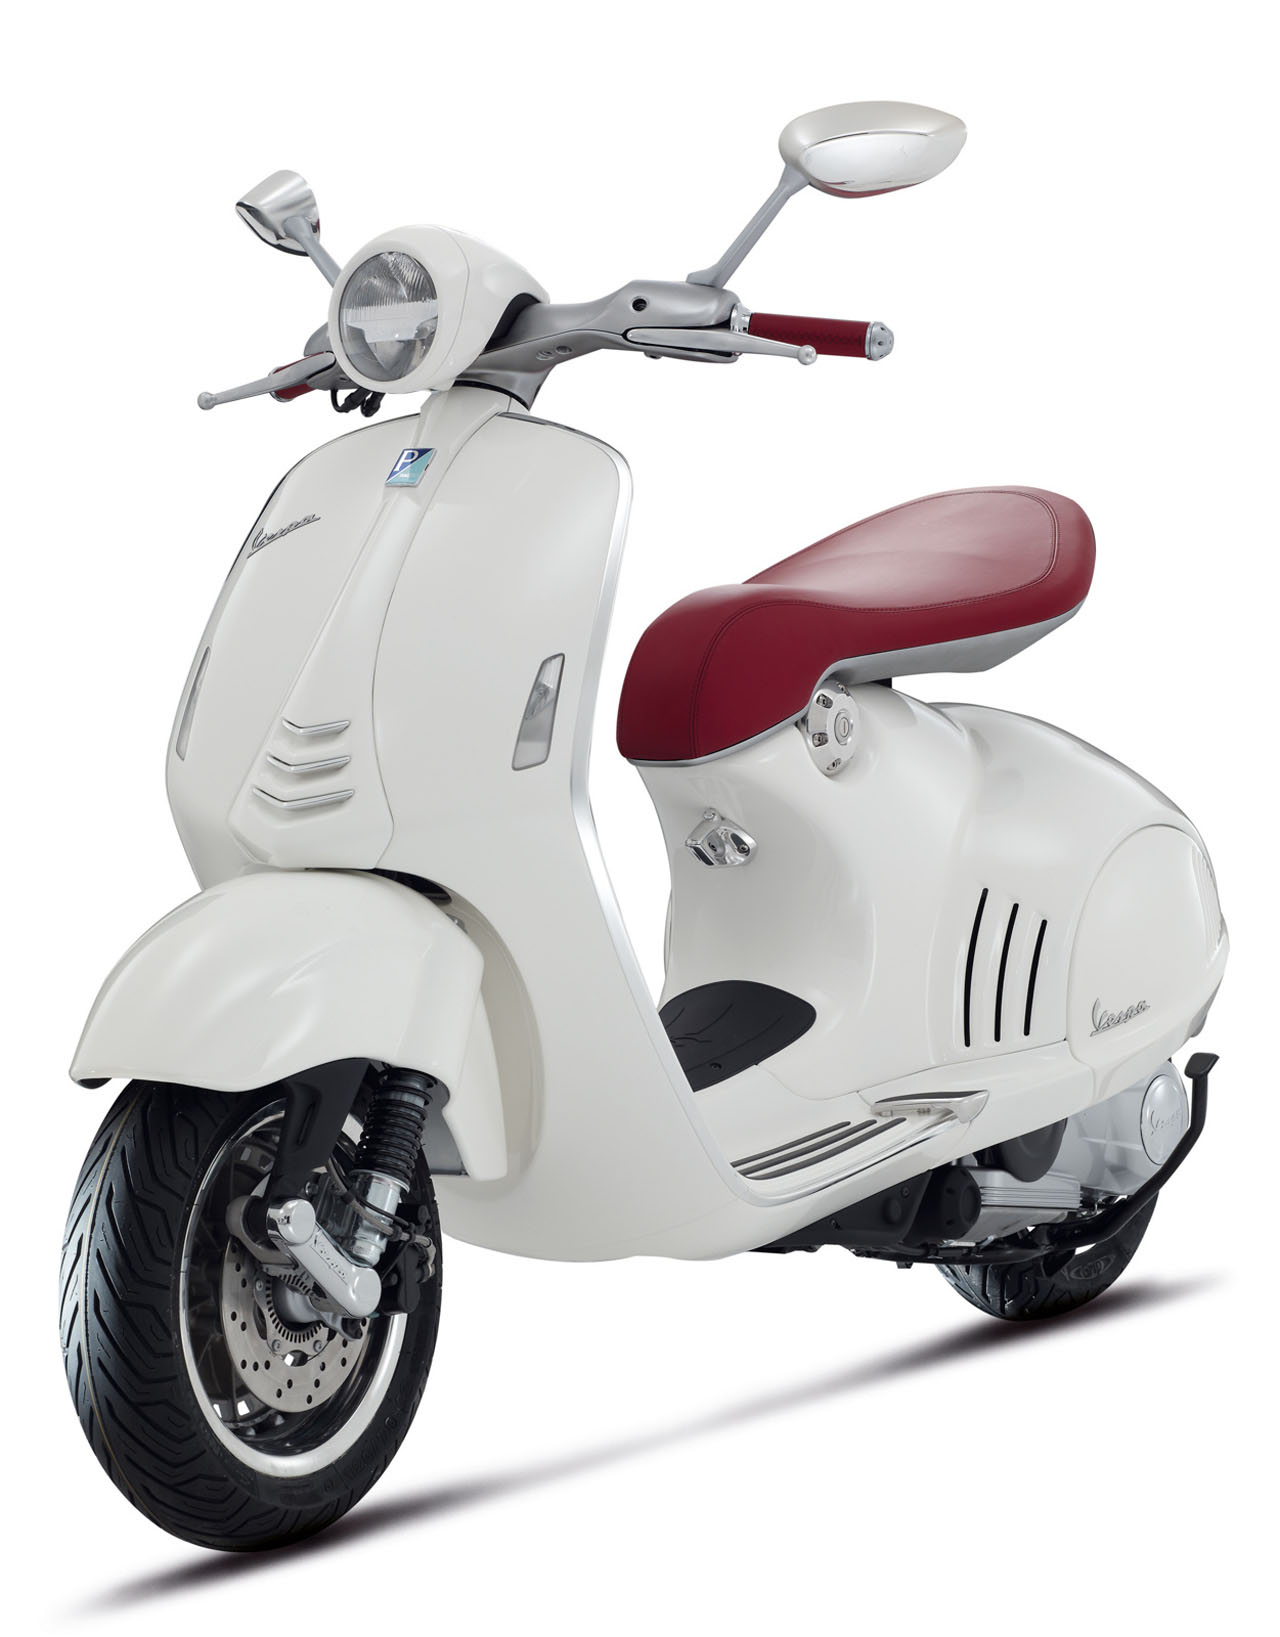 2013 Vespa 946 Photo Gallery - Autoblog